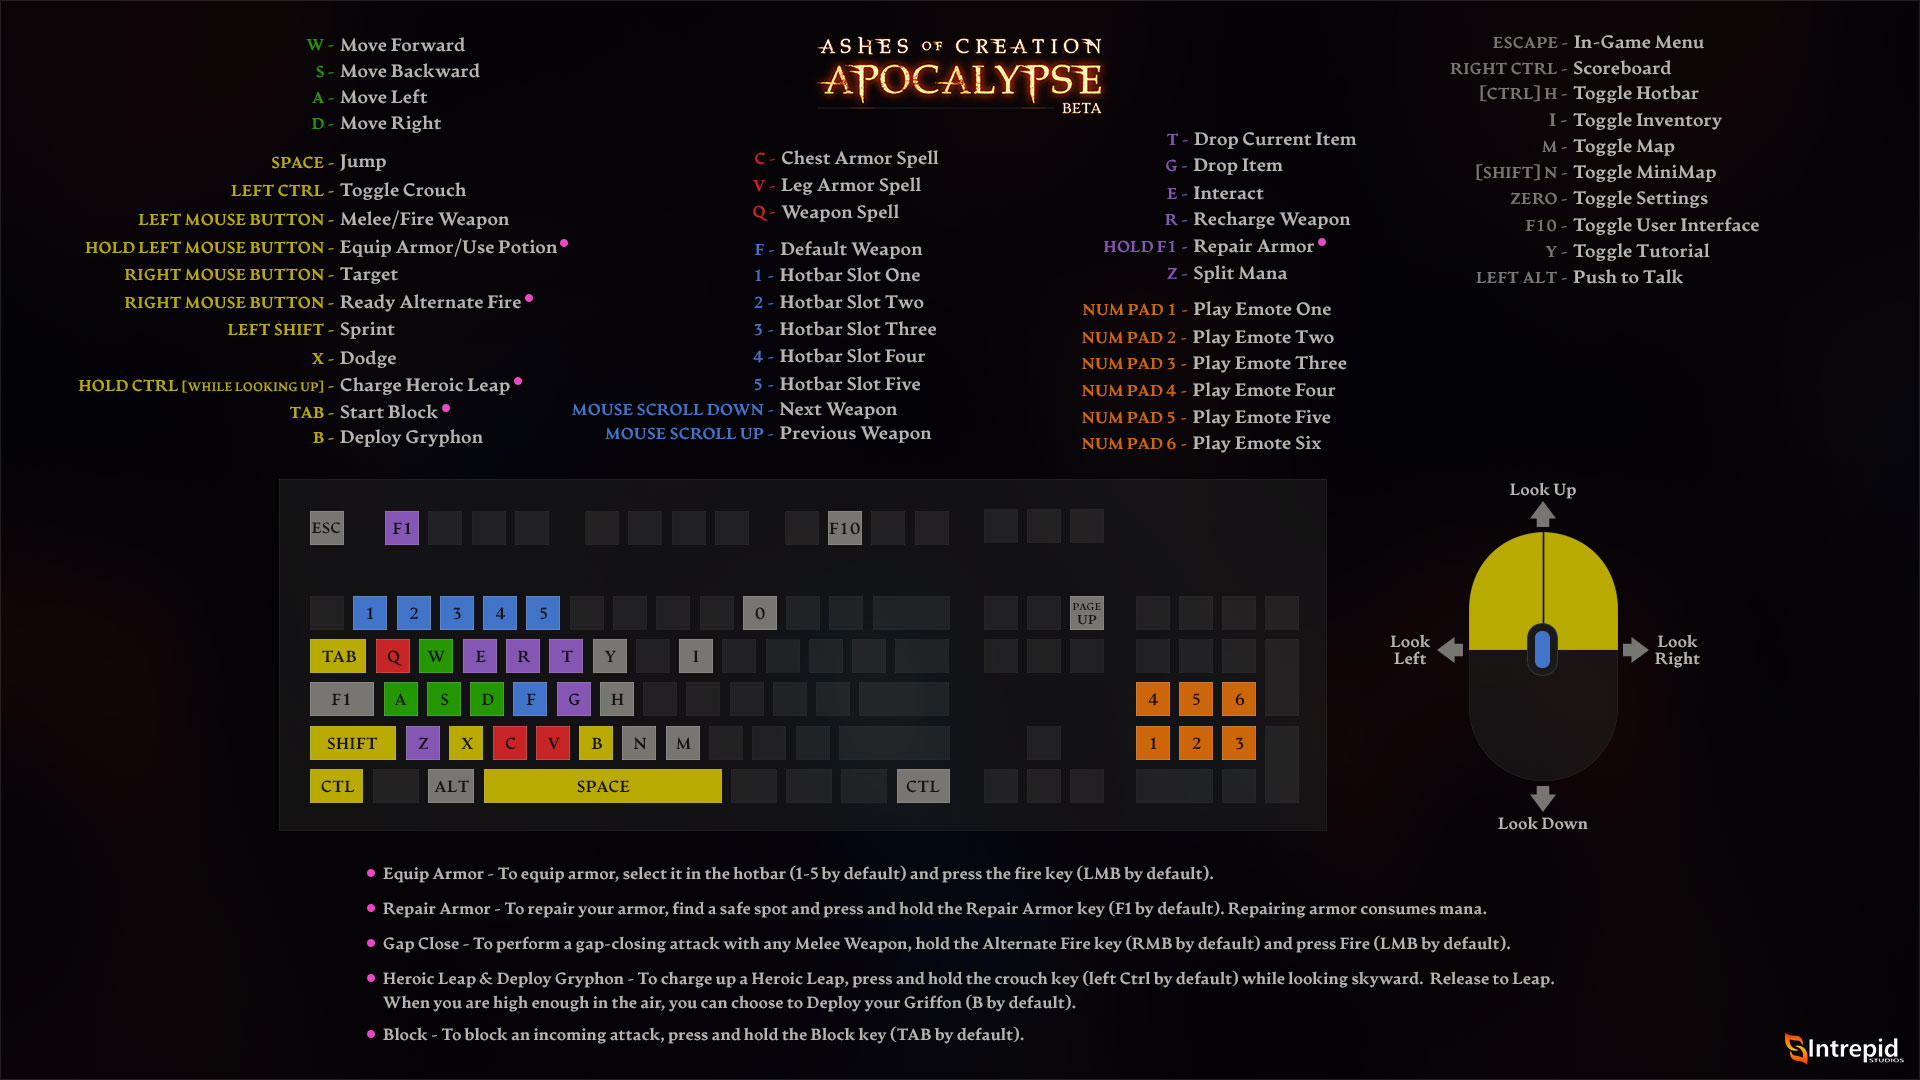 APOC-Keyboard-Shortcuts.jpg